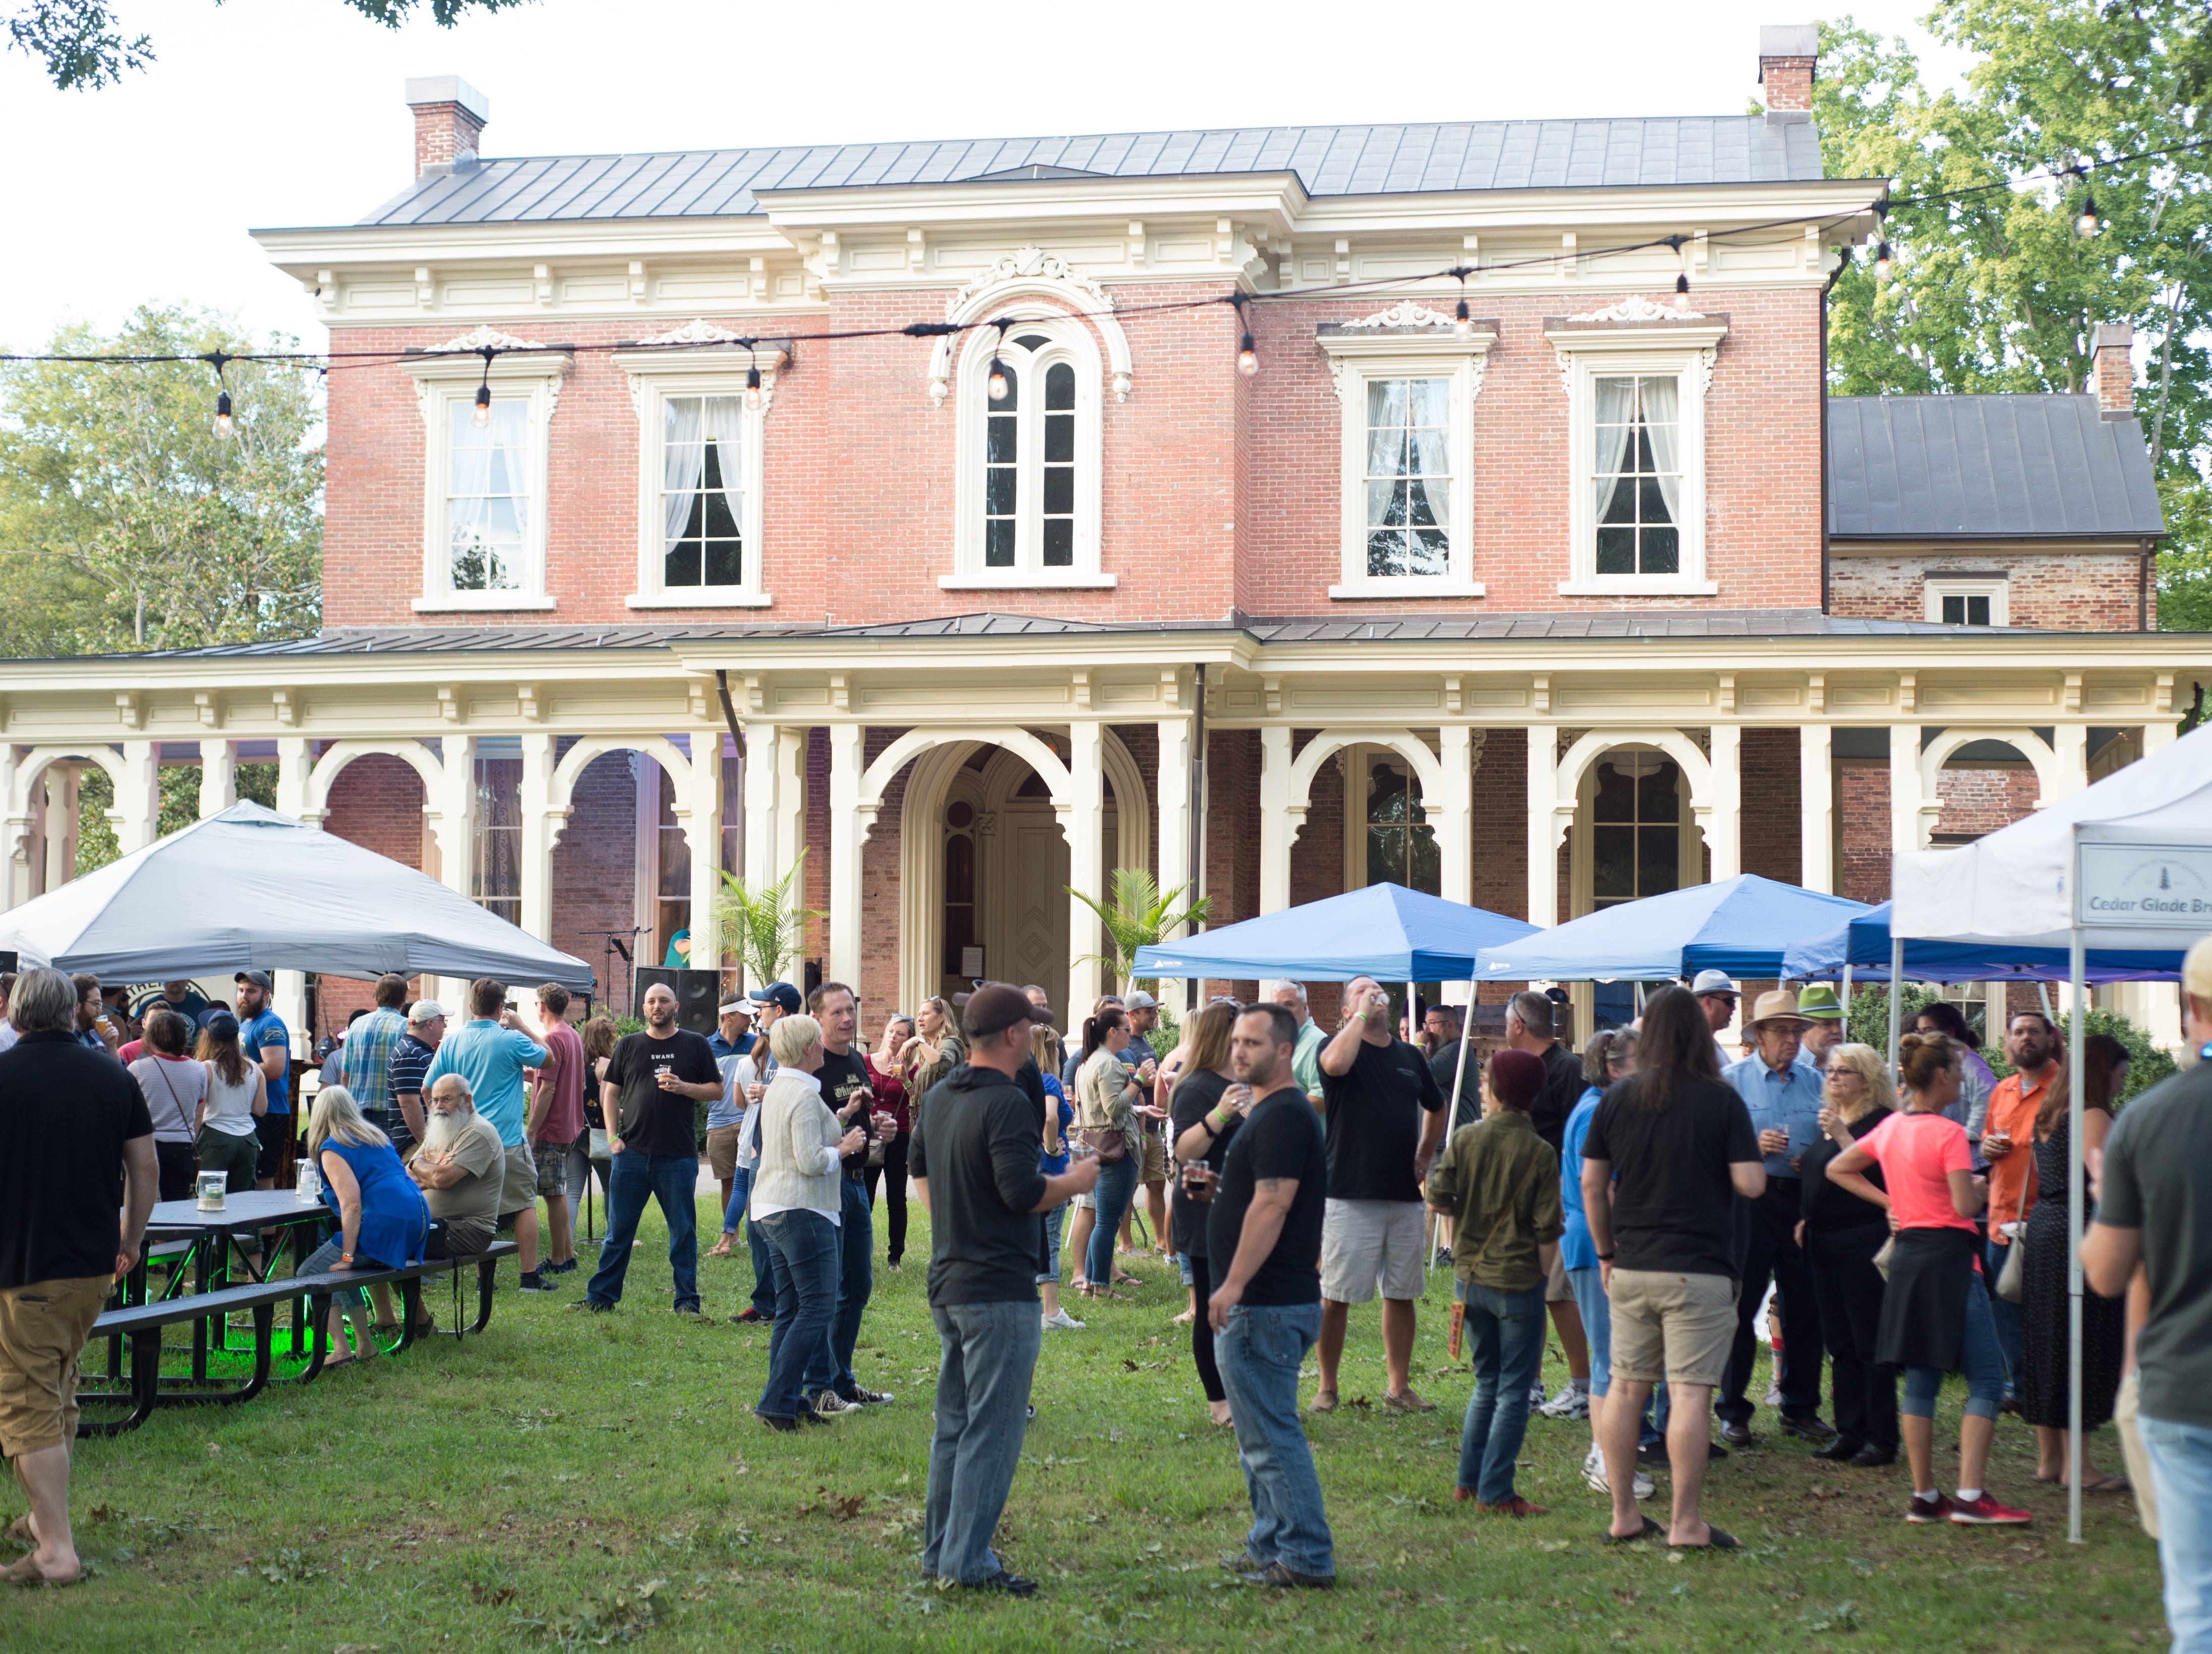 Oktoberfest drew a large crowd to Oaklands Mansion in Murfreesboro on Saturday, Sept. 29.